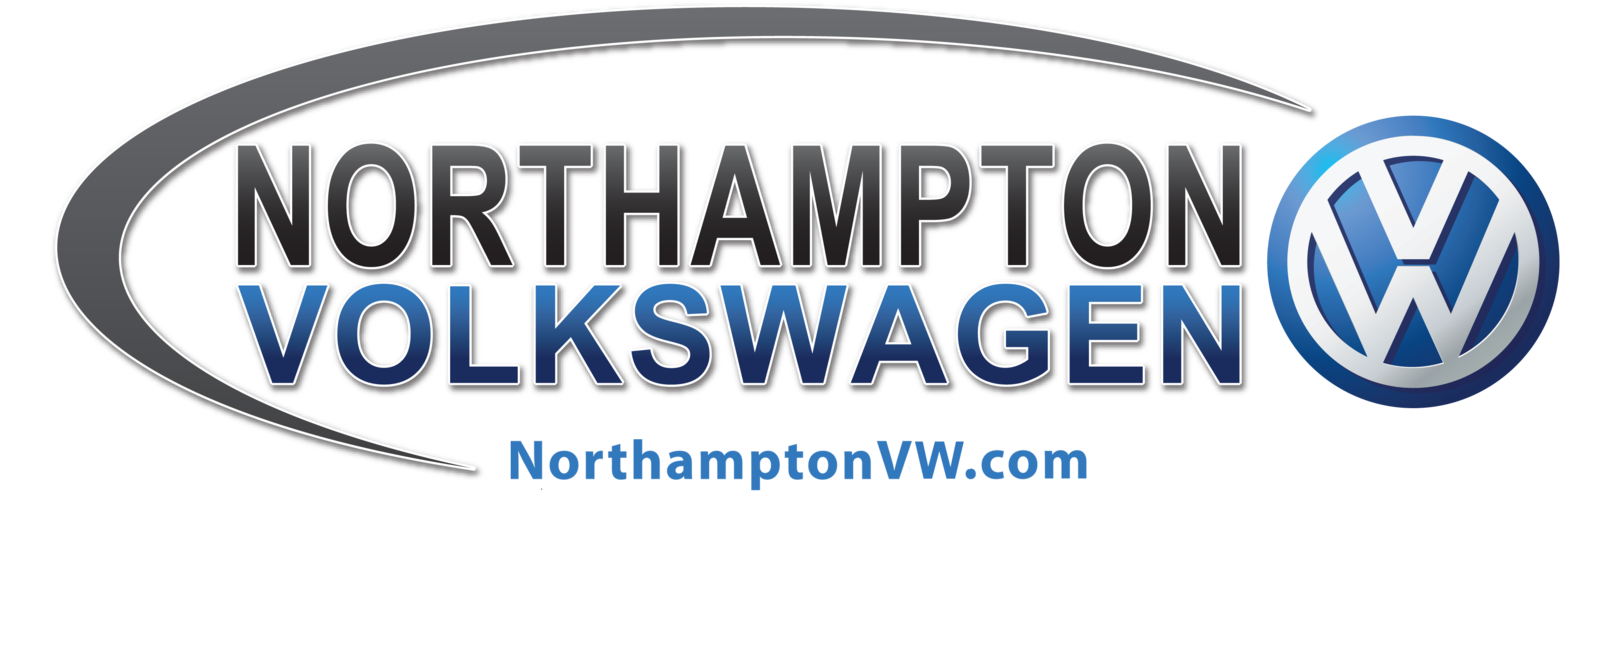 Gmc Dealers In Ma >> Northampton Volkswagen - Northampton, MA: Read Consumer reviews, Browse Used and New Cars for Sale